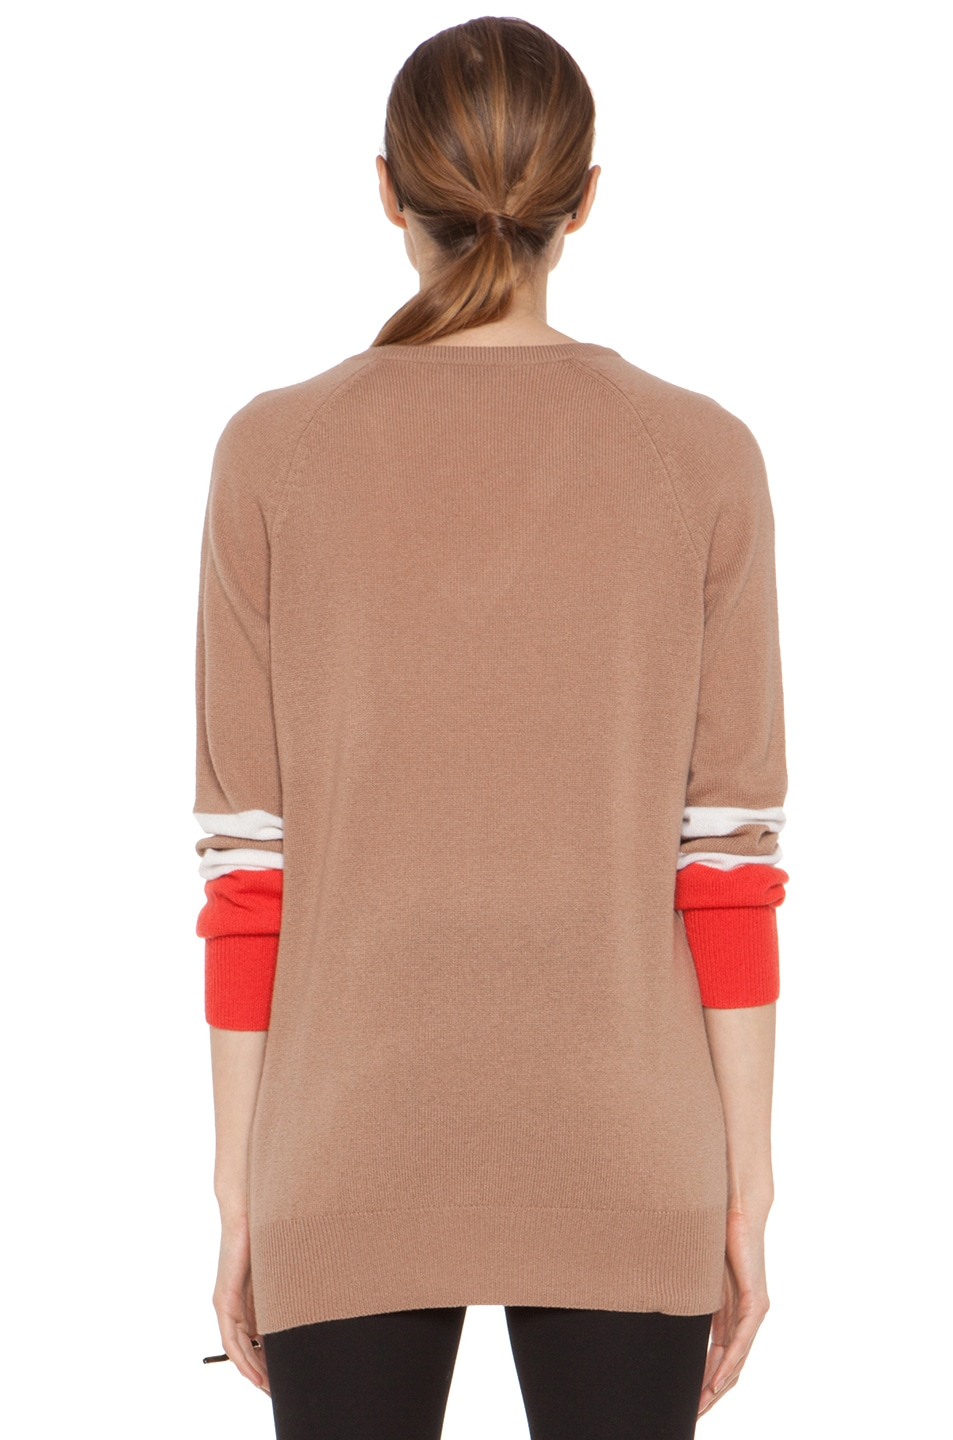 Image 5 of Equipment Asher V Neck Cashmere Colorblock Pullover in Camel